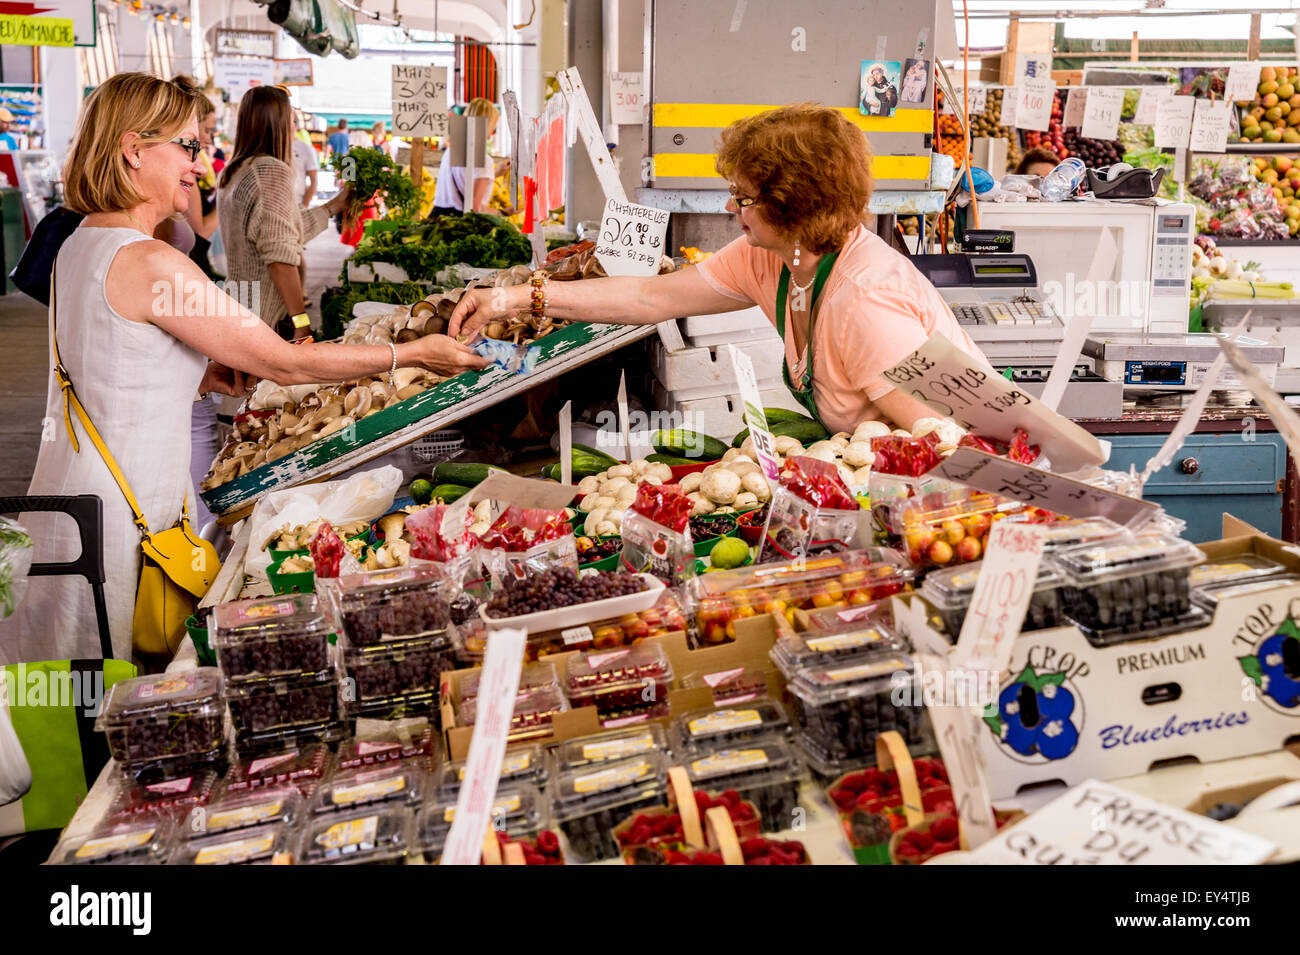 Woman buys fruits at Jean Talon Market in Montreal, Canada - Stock Image